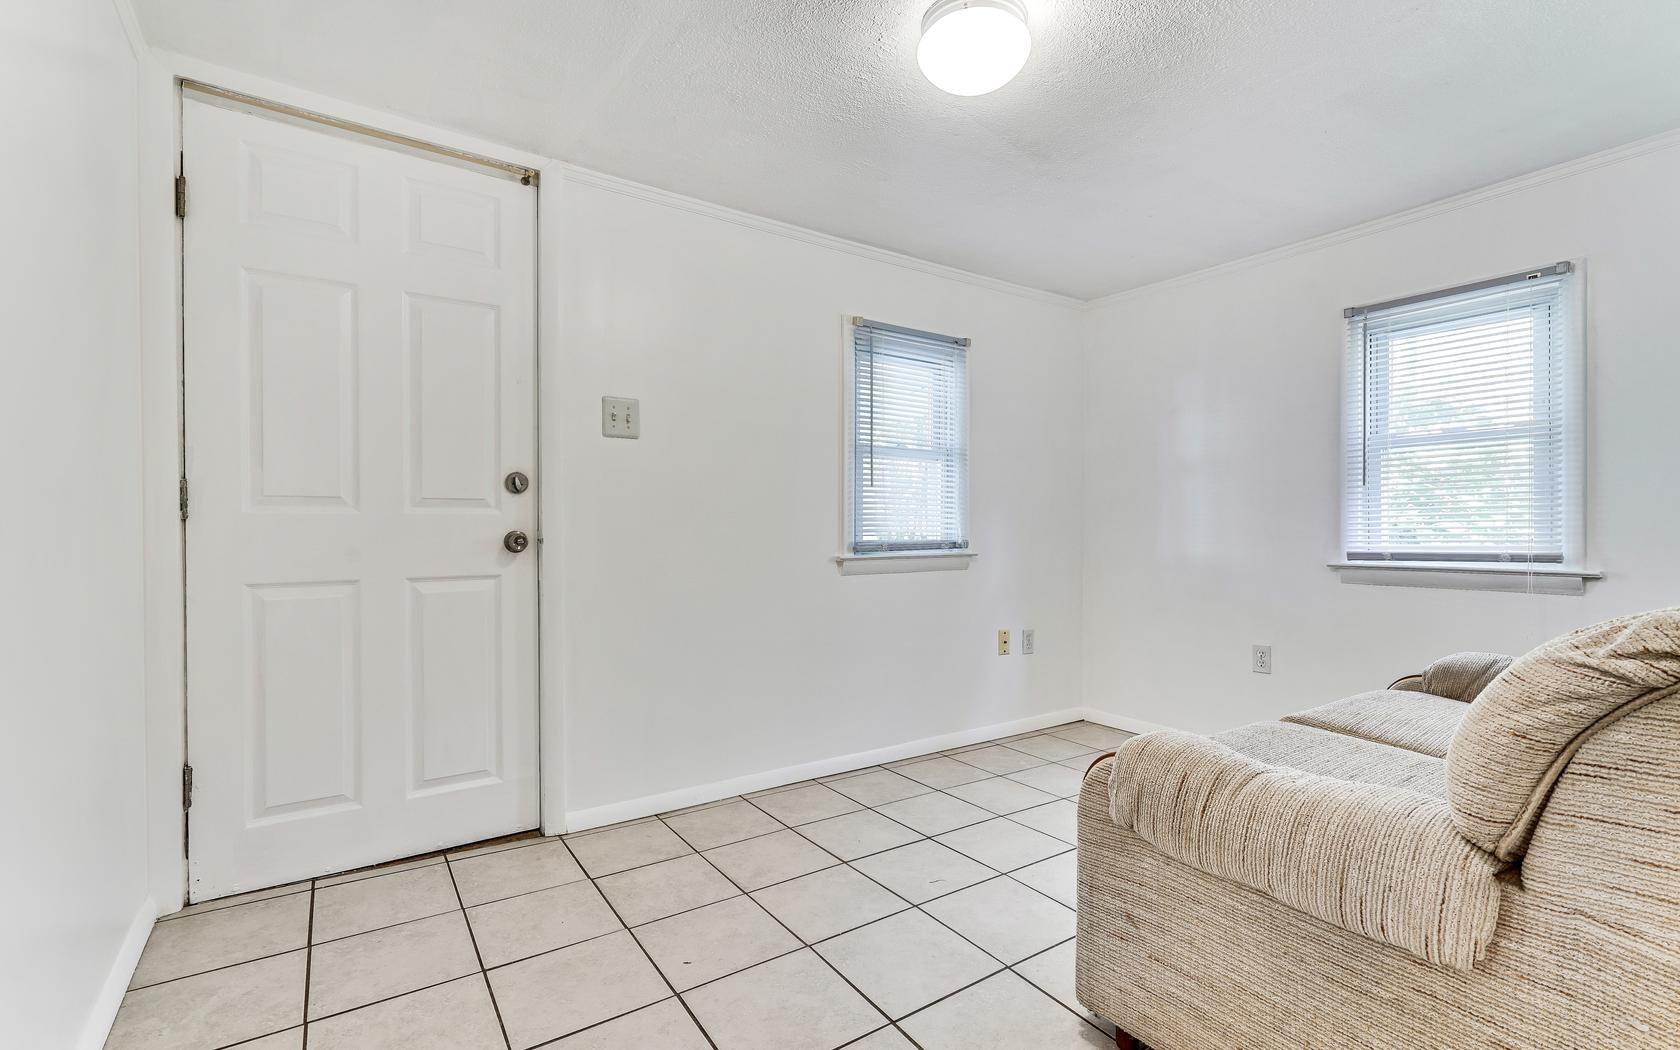 Additional photo for property listing at Beach House with Back Cottage 503 14th Ave Belmar, Nueva Jersey 07719 Estados Unidos